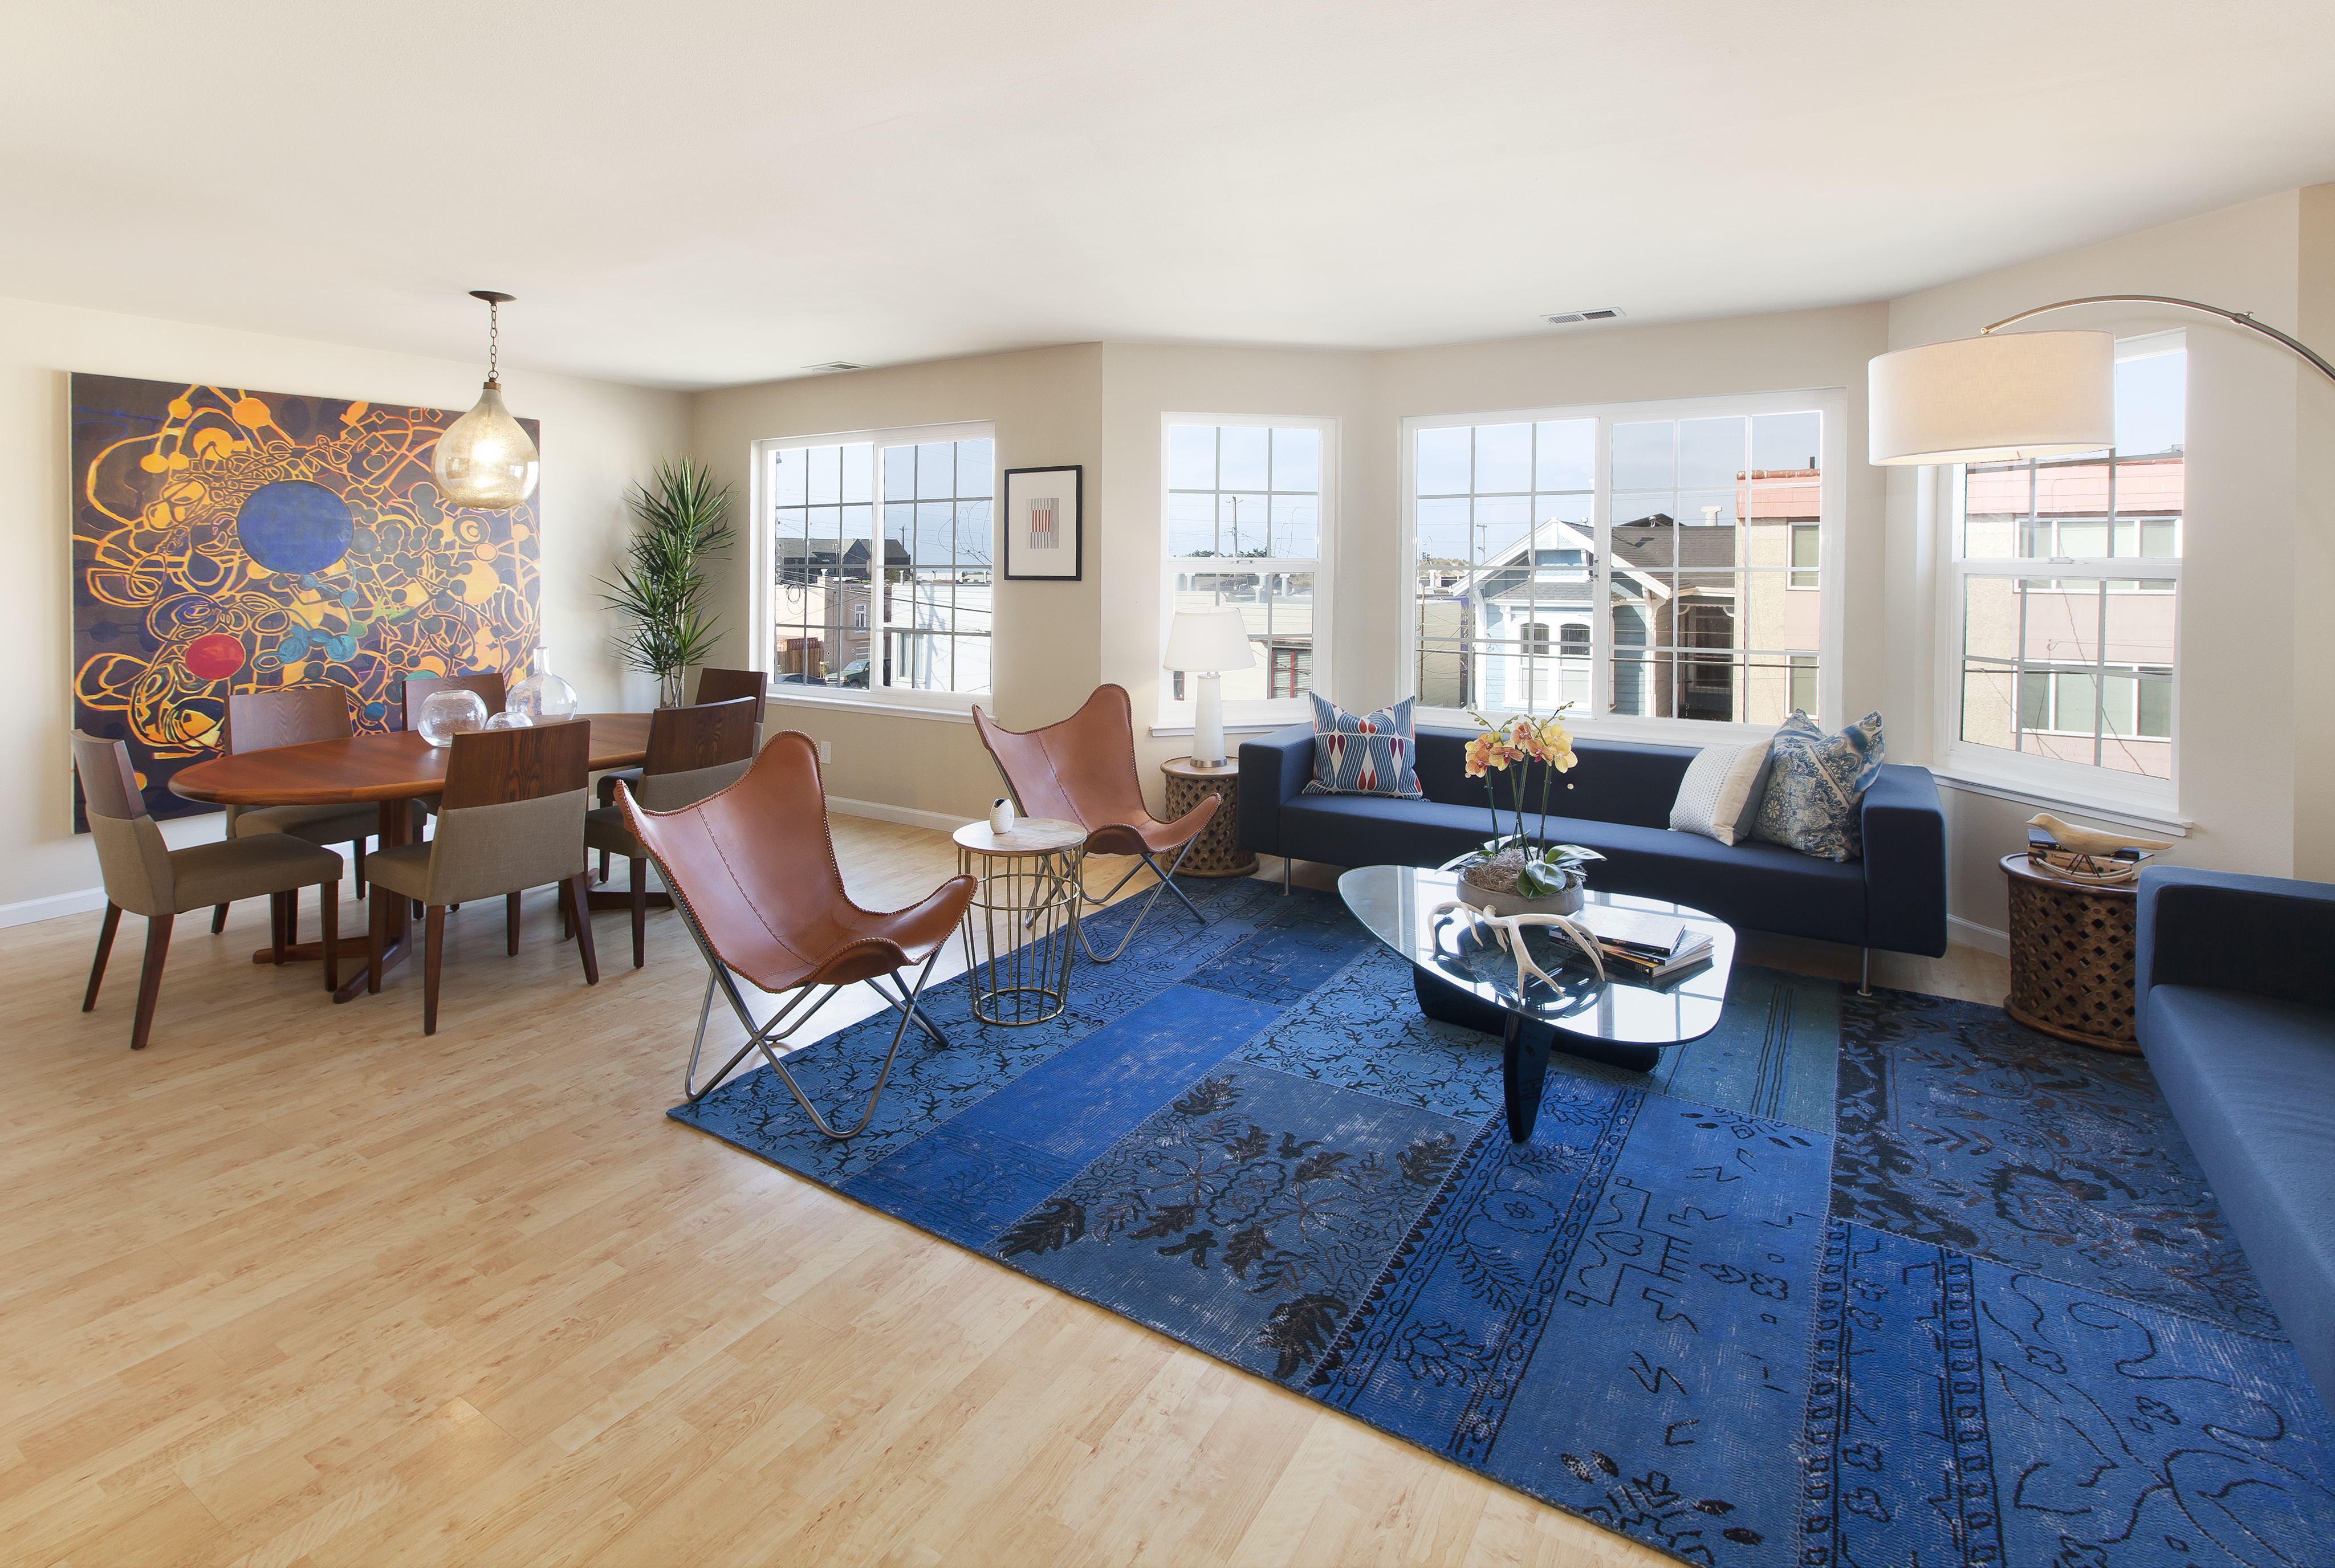 For Sale: 1582 48th Ave, Top Floor Condo By Ocean Beach!